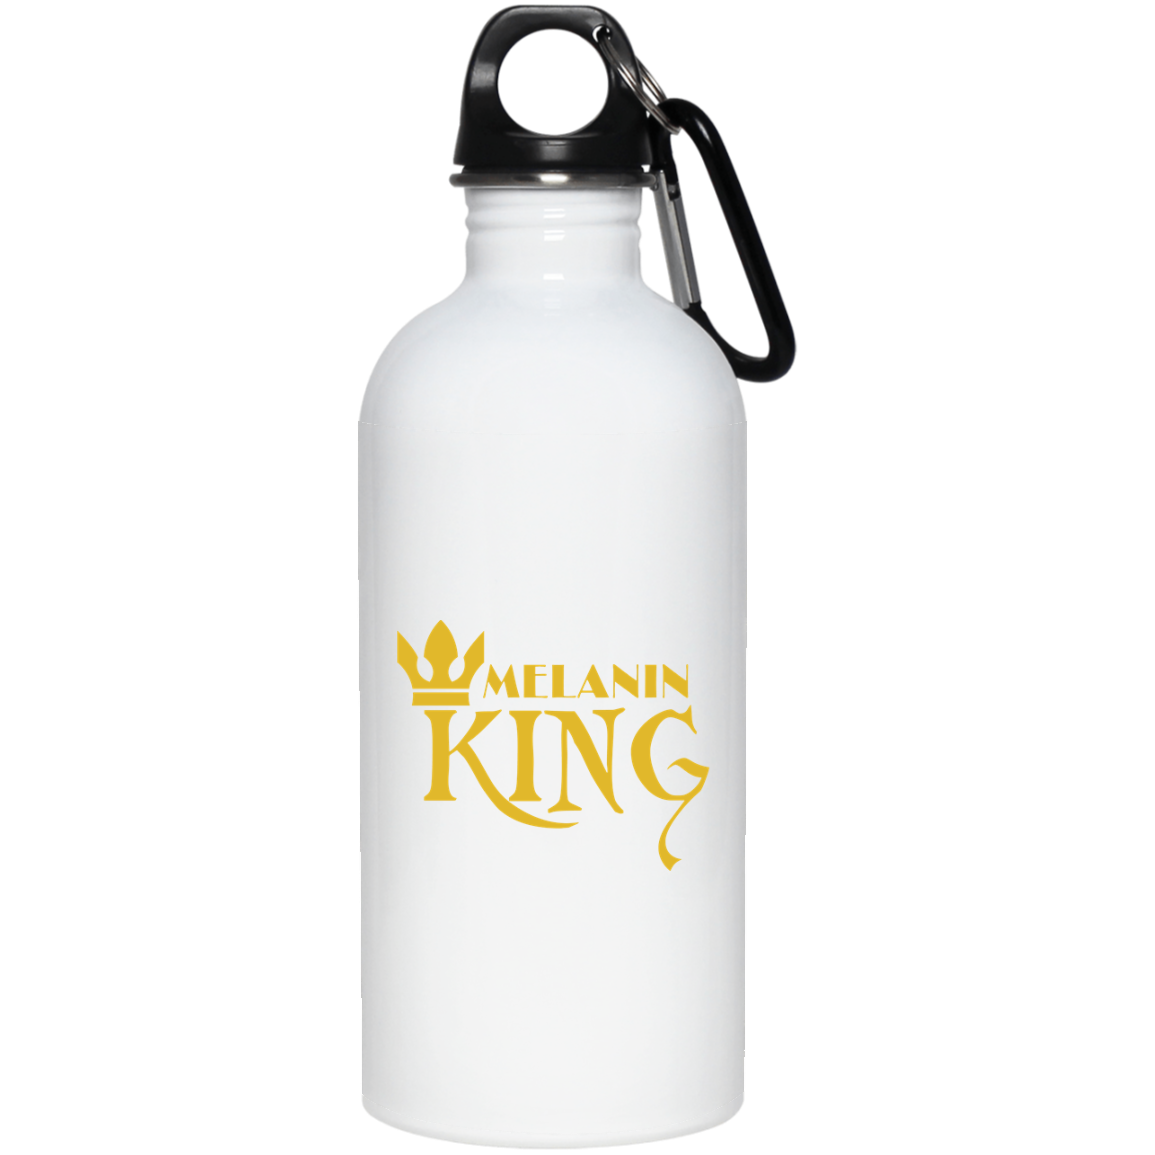 African Pride - Melanin King 20 oz. Stainless Steel Water Bottle